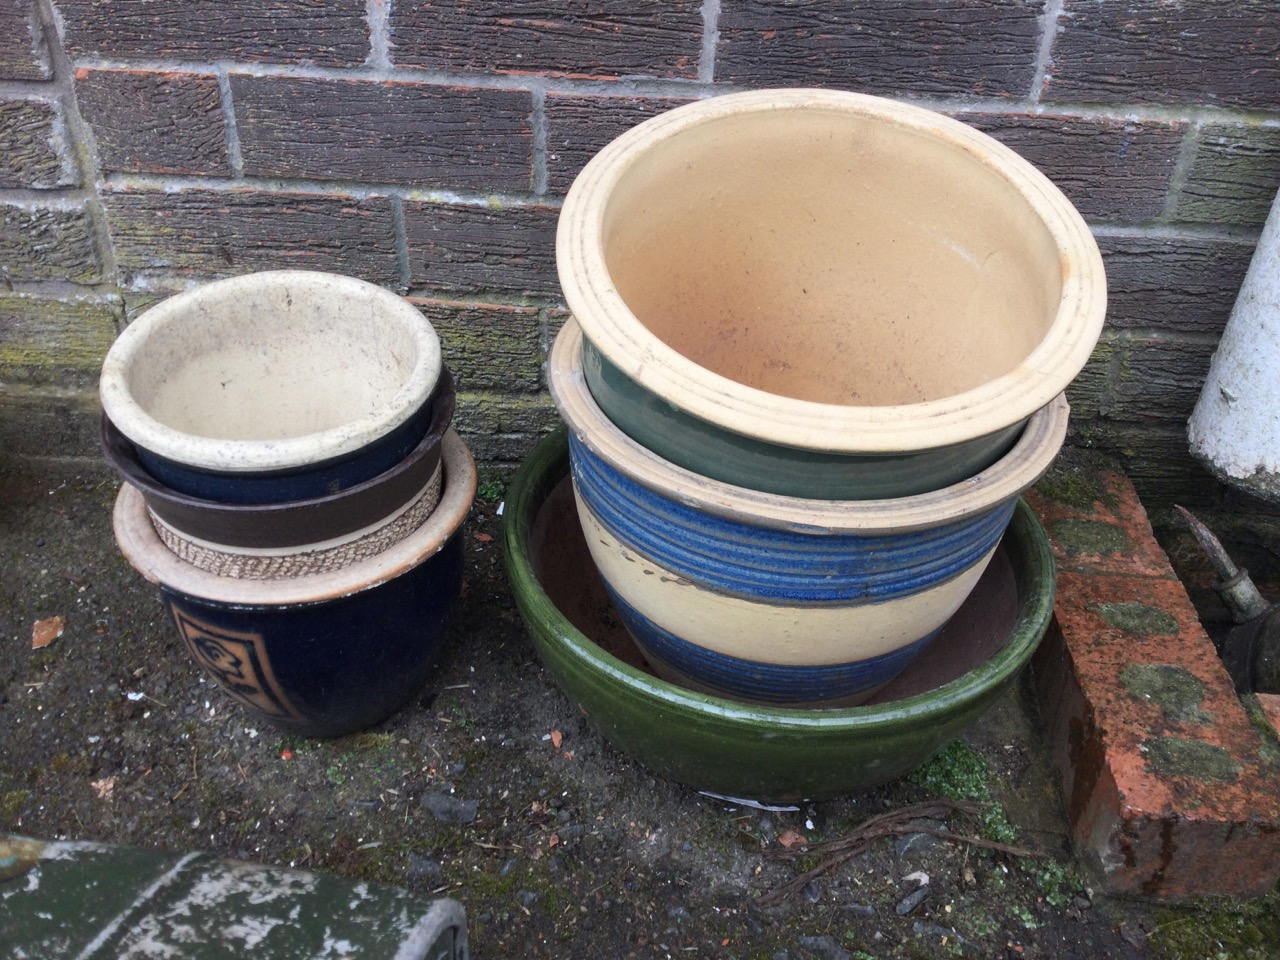 A box of 48 miscellaneous terracotta flowerpots; and 6 stoneware flower tubs & bowls with glazed - Image 3 of 3